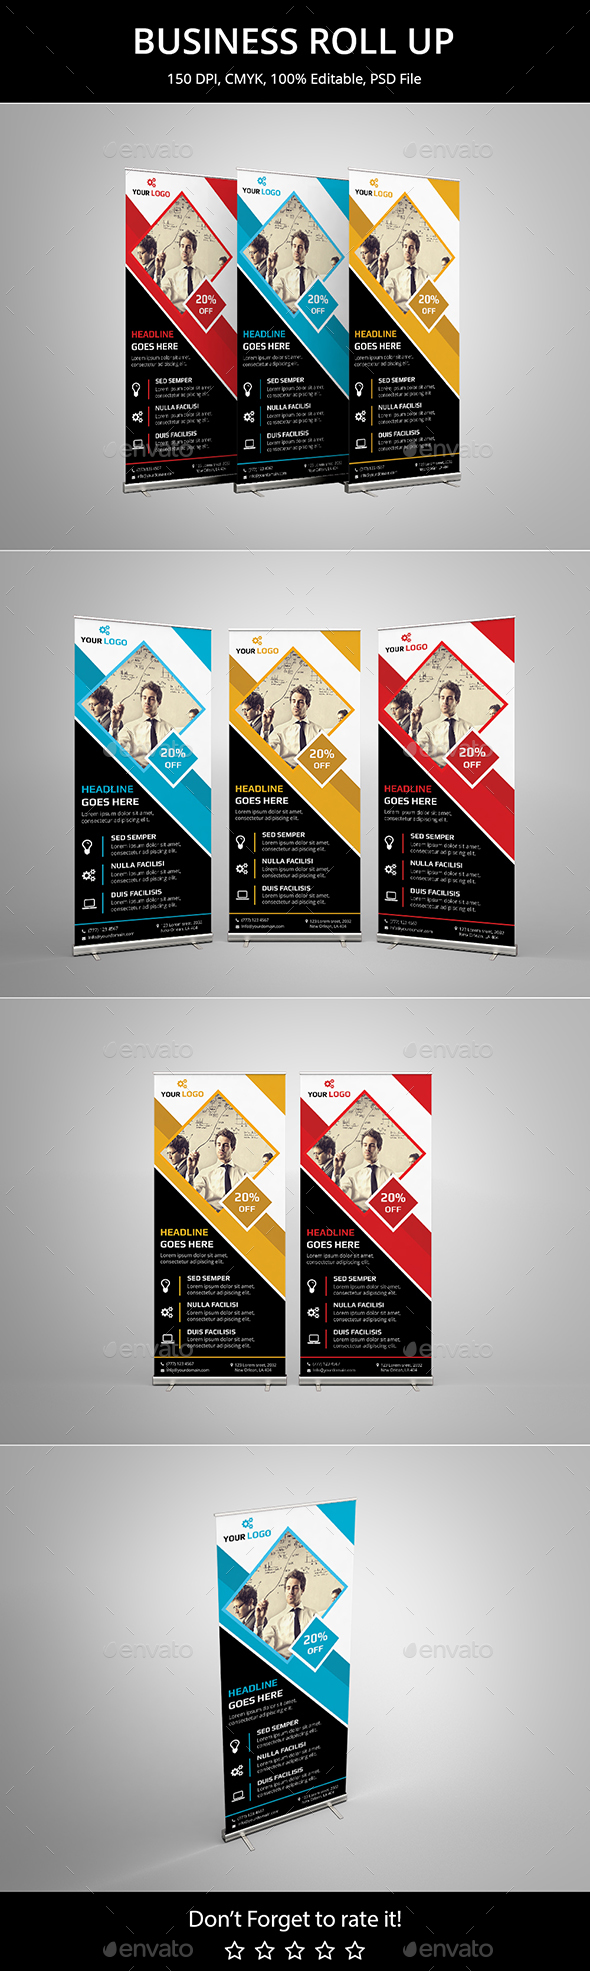 Business Roll up v13 - Signage Print Templates